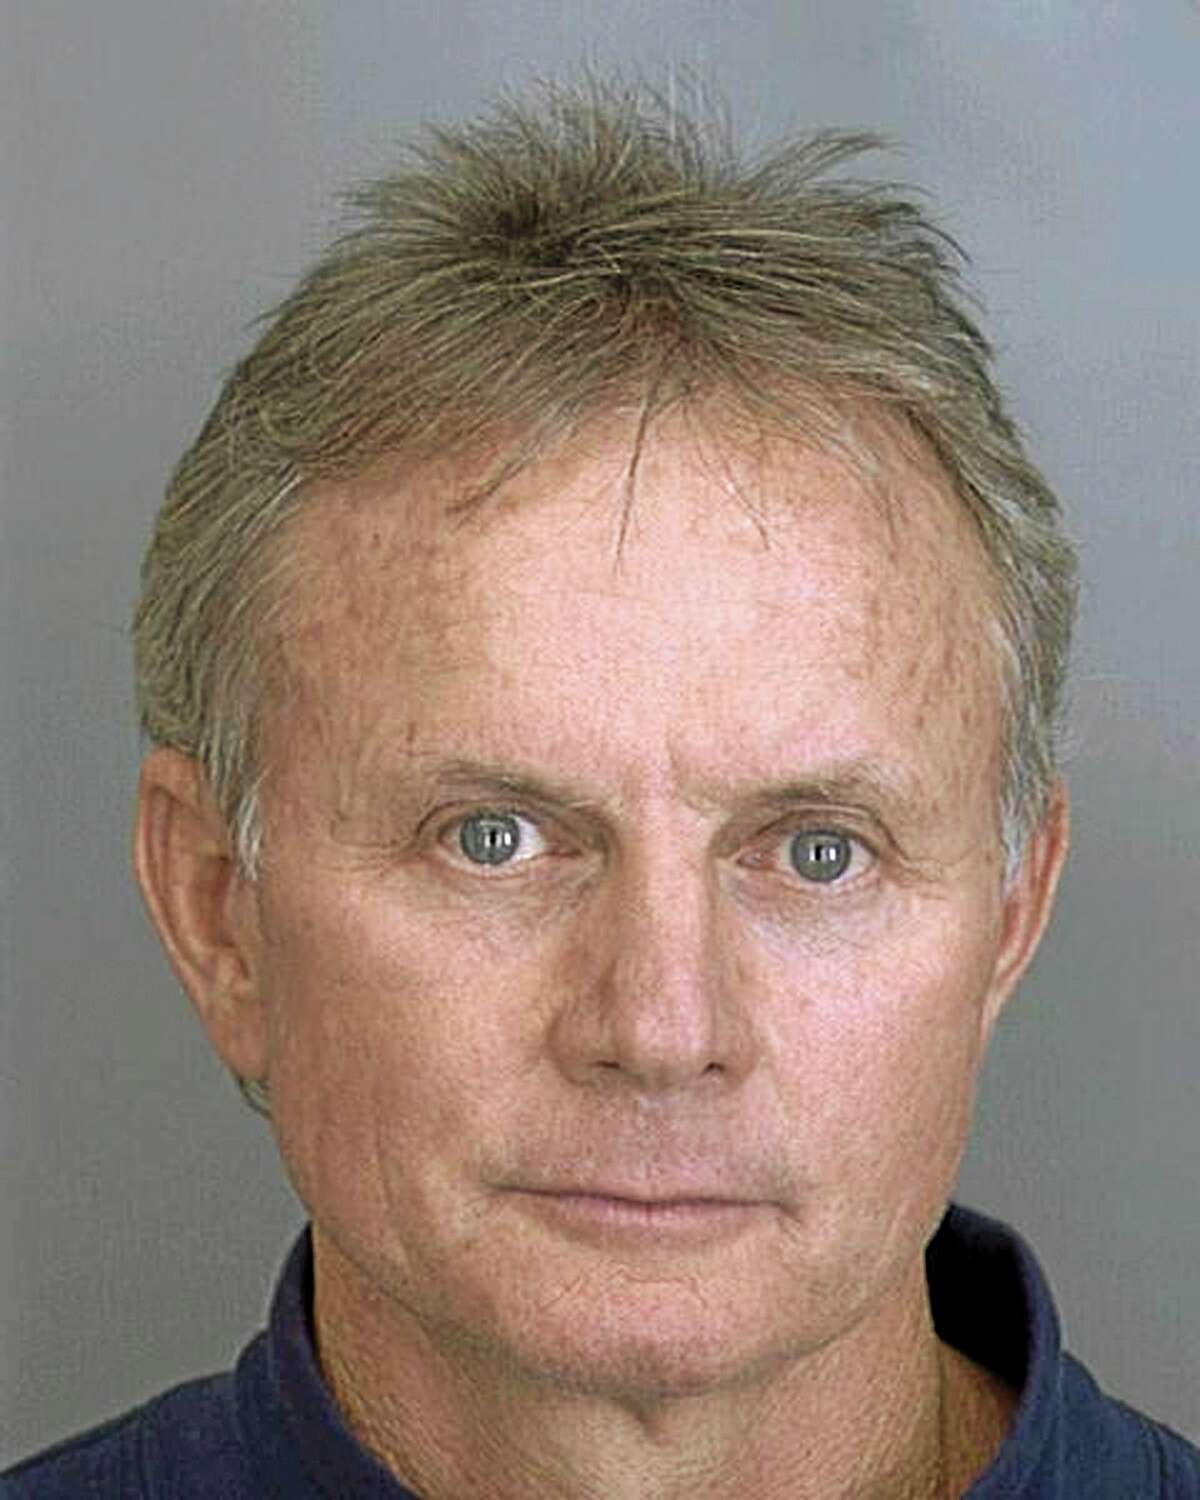 FILE - This Nov. 2, 2001 booking file photo, provided by the Dallas County Sheriff's Department show Dr. Wayne Scott Harrington, a Tulsa, Okla., dentist. The oral surgeon whose filthy clinics led to the testing of thousands of patients for HIV and hepatitis permanently surrendered his professional license on Friday, Aug. 22, 2014. (AP Photo/Dallas County Sheriff Department, File)